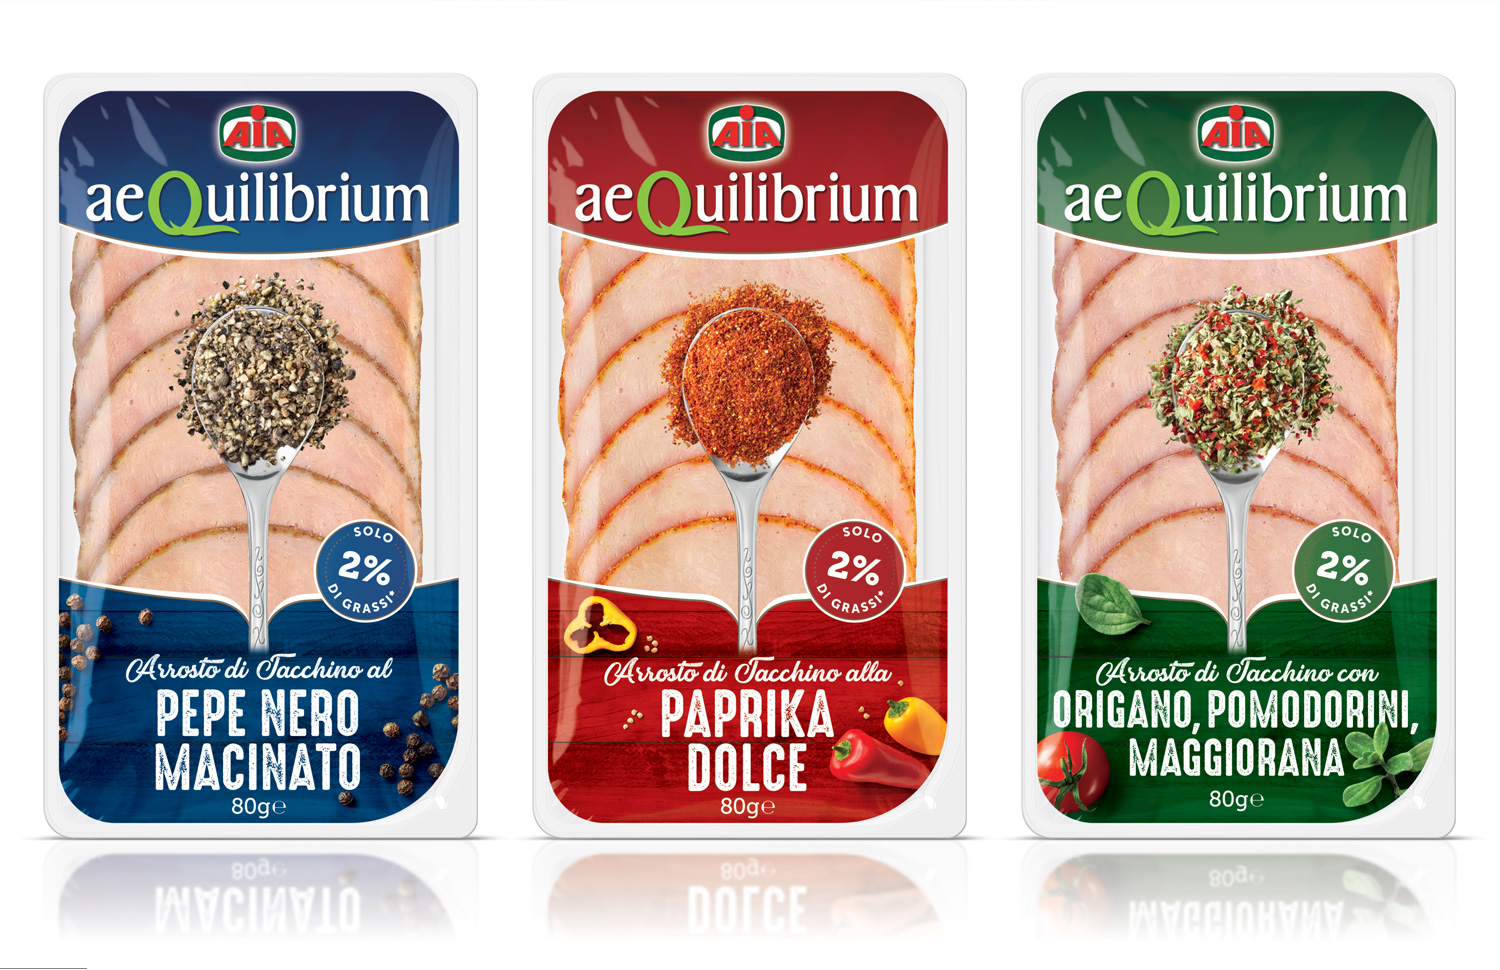 Agency Redefine and Design the New Identity of Aequilibrium Brand